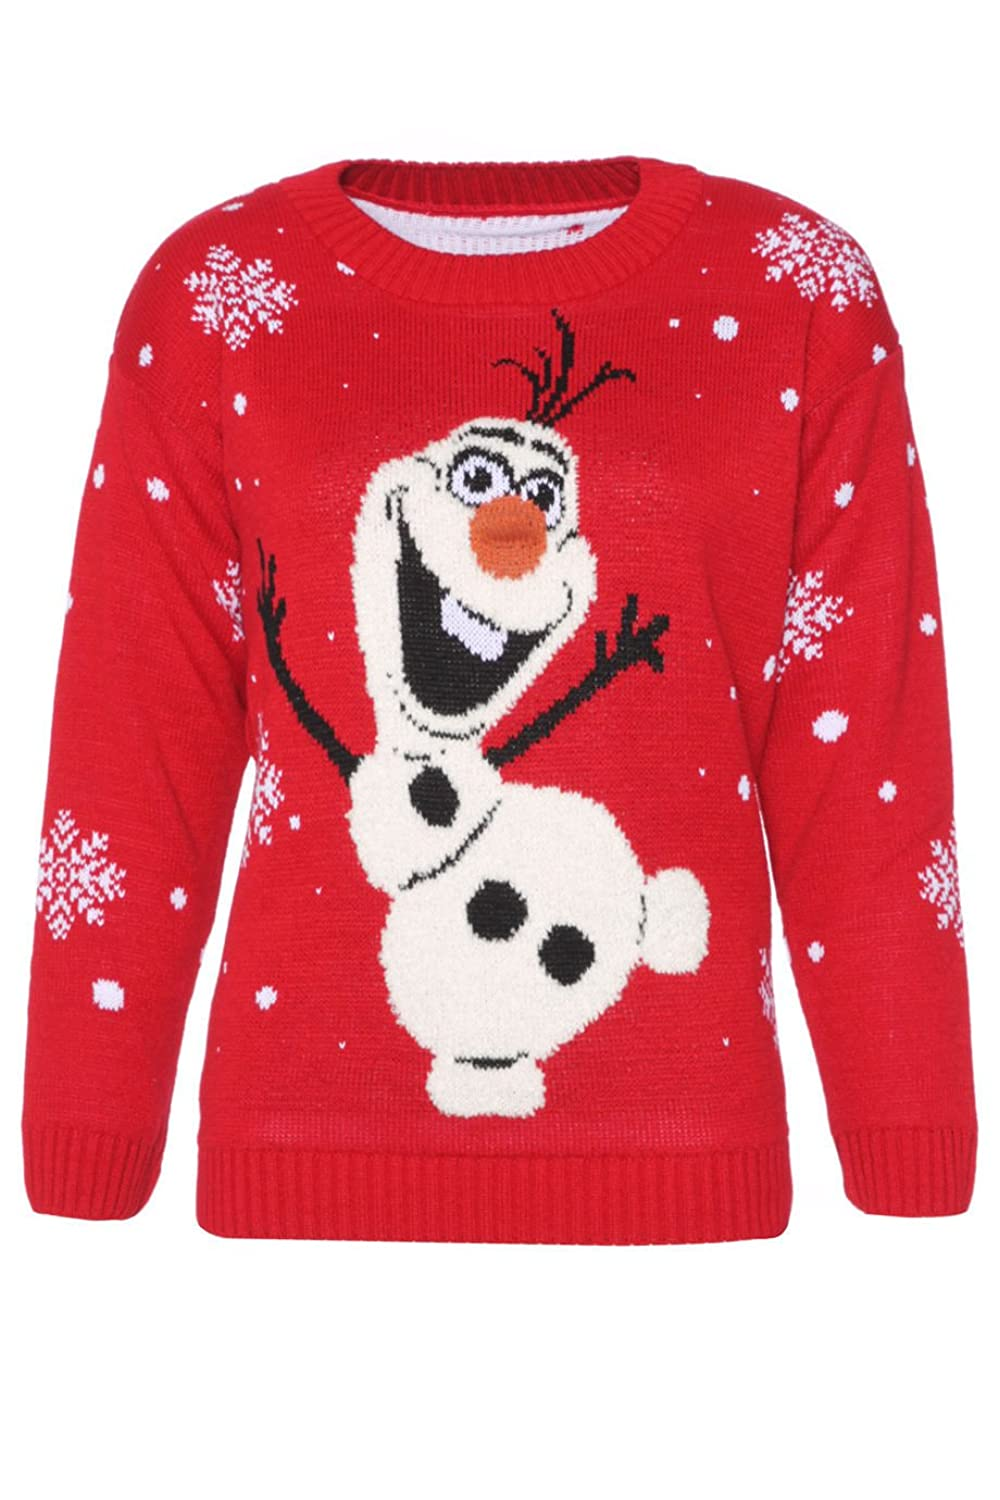 Womens Ladies Novelty Olaf Frozen Style Christmas Jumper Sweater ...